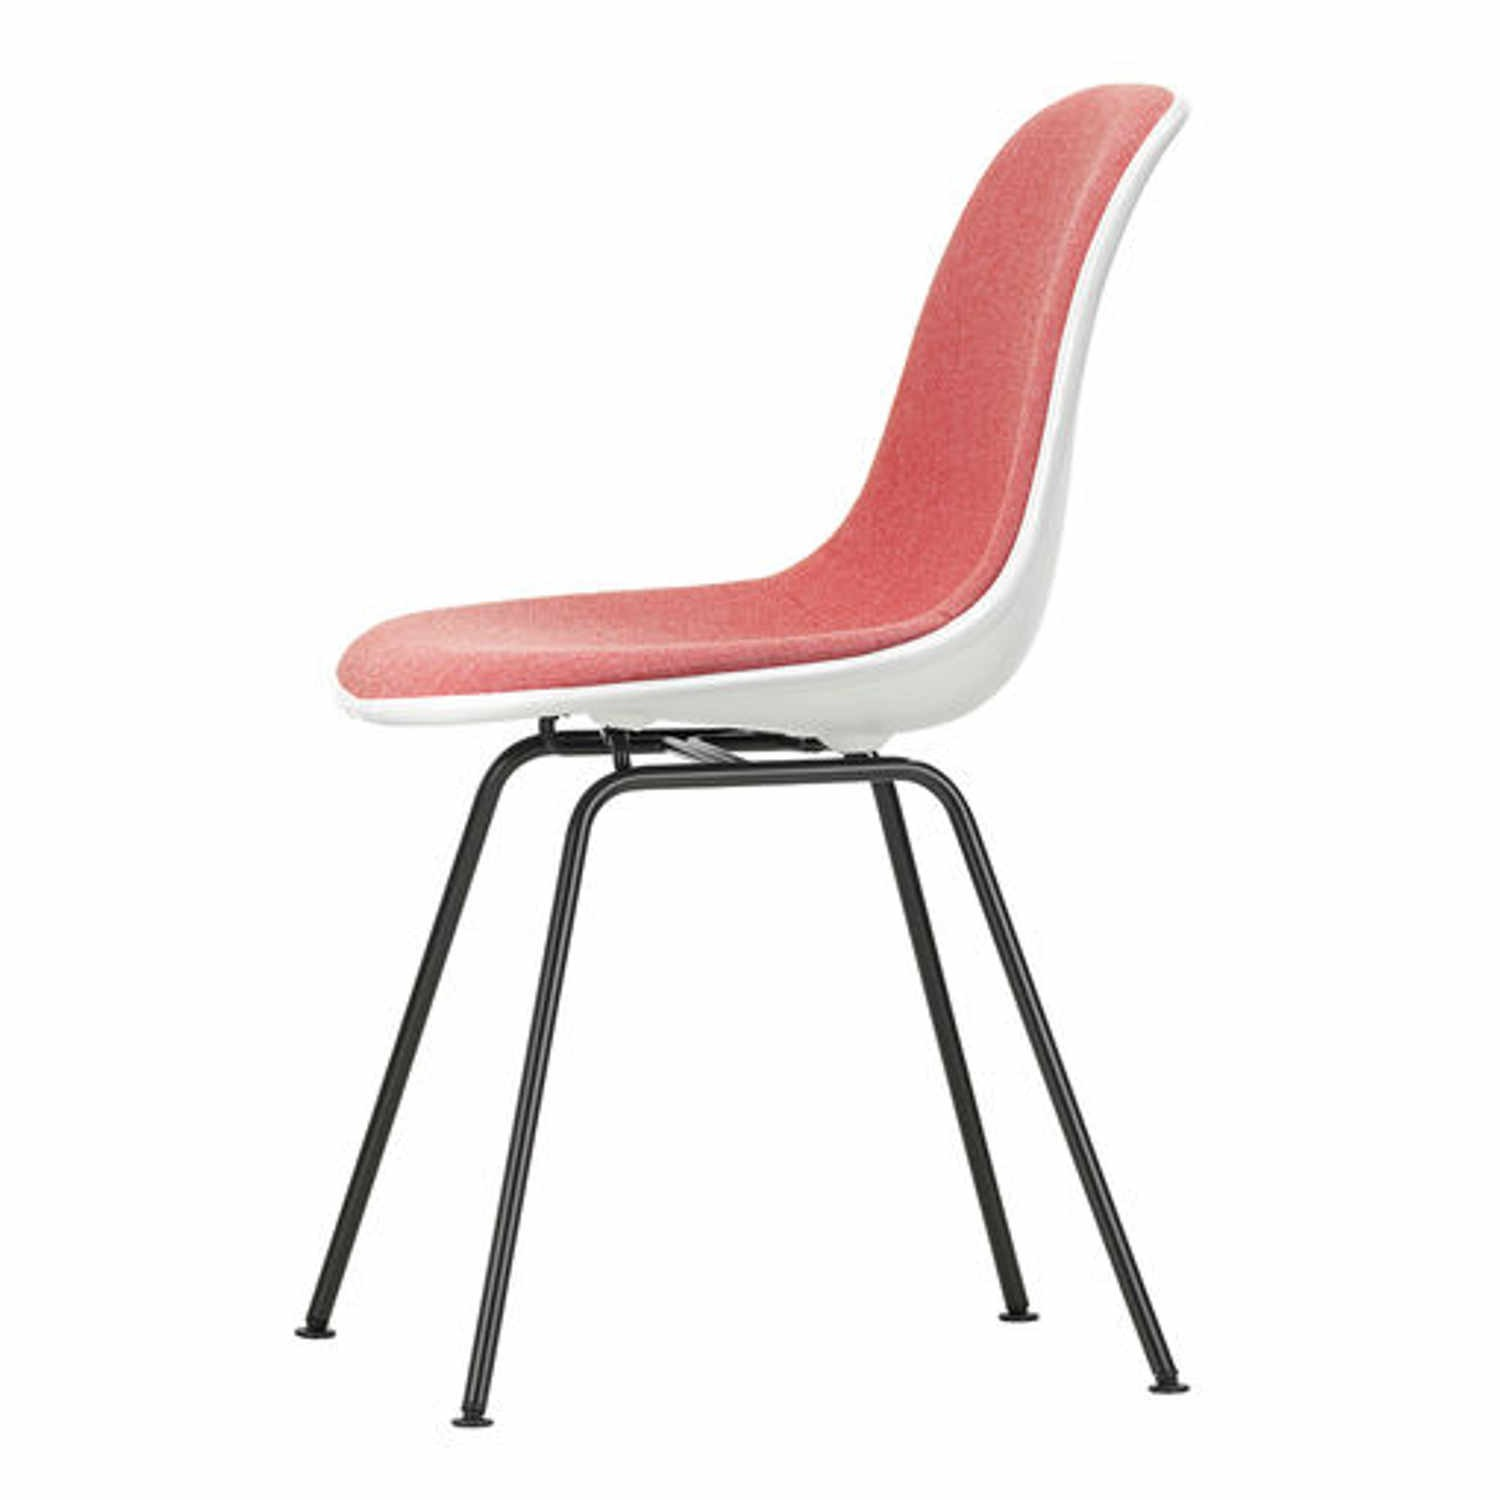 Eames Chair Weiß Vitra Eames Plastic Side Chair Dsx Stuhl - Bruno-wickart.ch